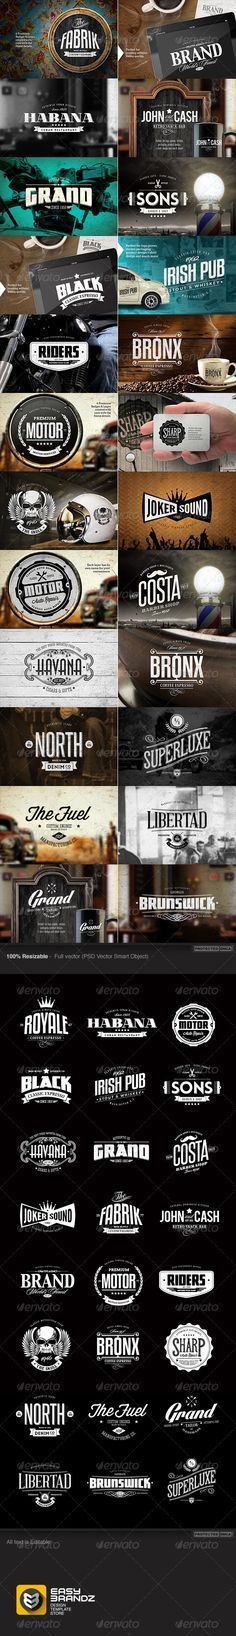 24 Badges & Logos Bundle | Buy and Download: http://graphicriver.net/item/24-badges-logos-bundle/7103911?WT.ac=category_thumb&WT.z_author=Easybrandz2&ref=ksioks